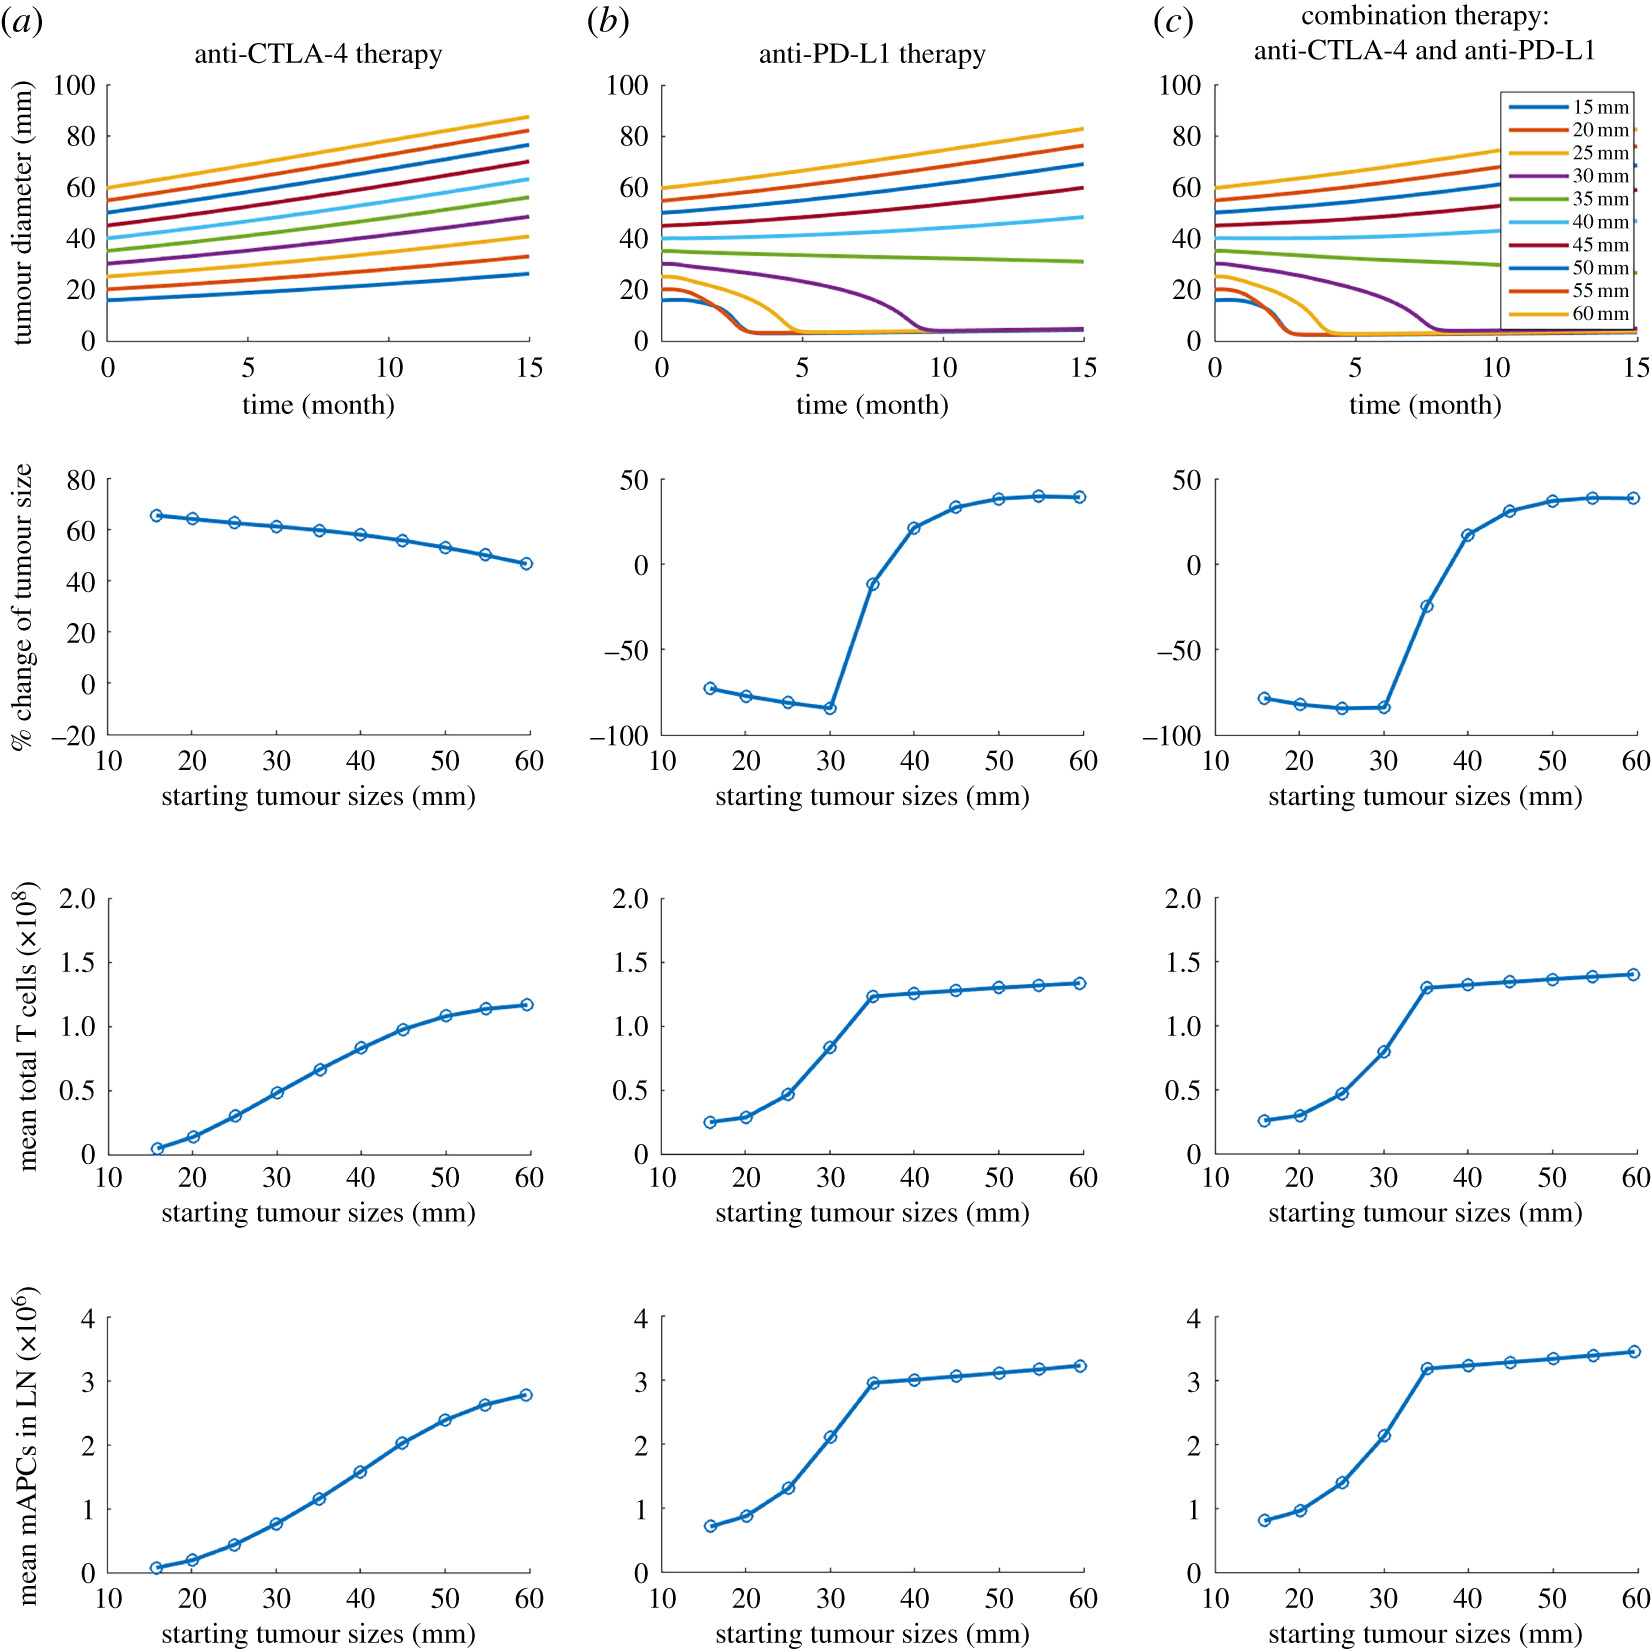 In silico simulation of a clinical trial with anti-CTLA-4 and anti